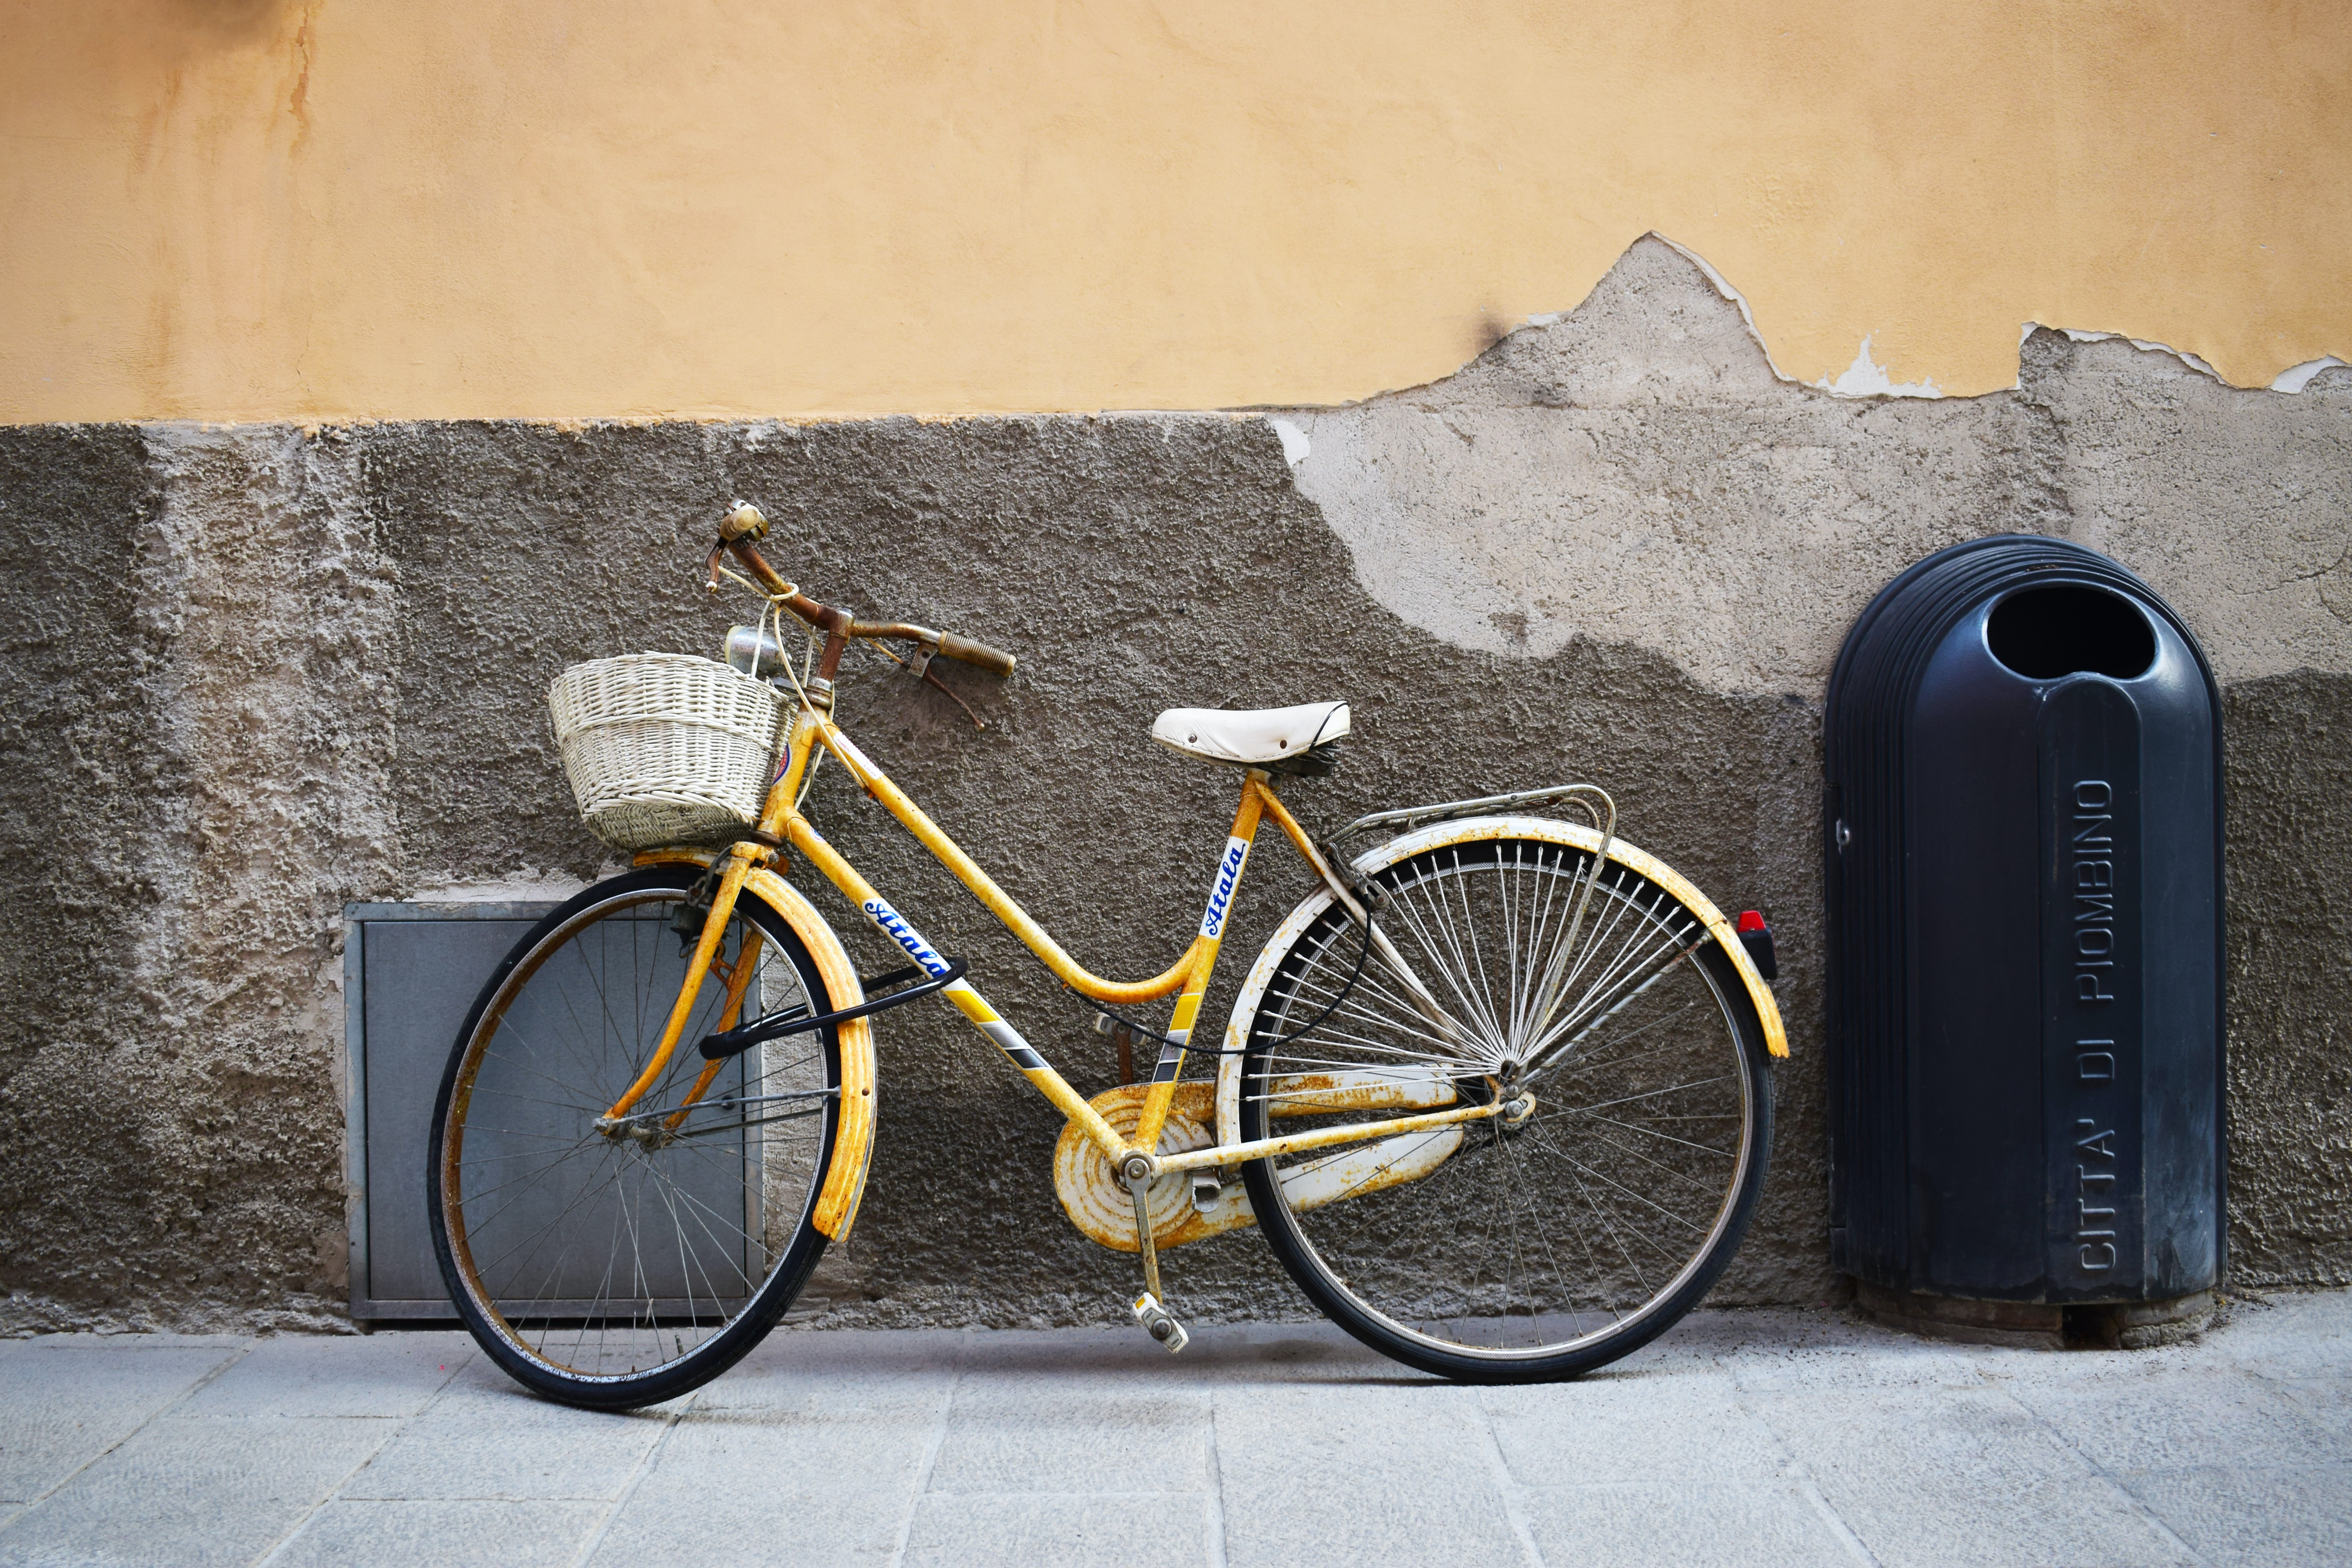 bicycle leaning on wall near trash bin